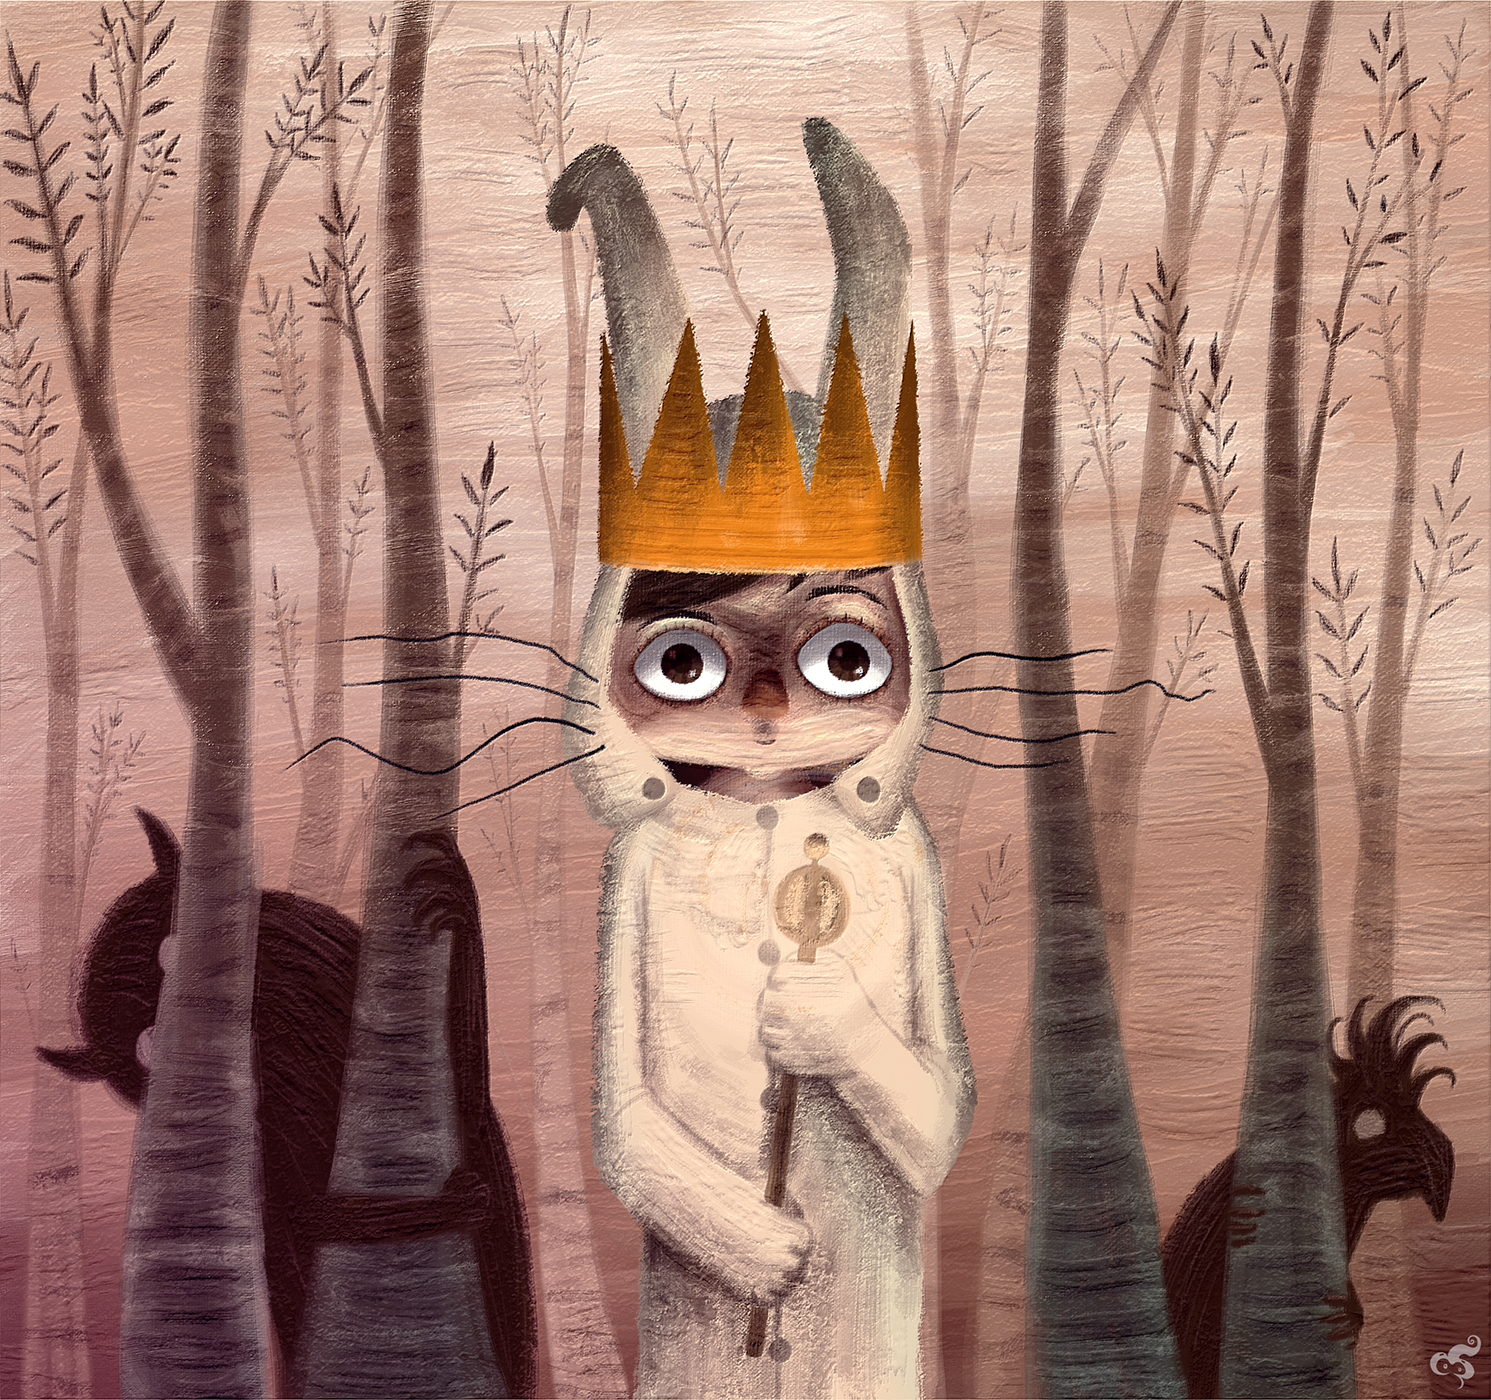 Ceyhun Şen where the wild things are